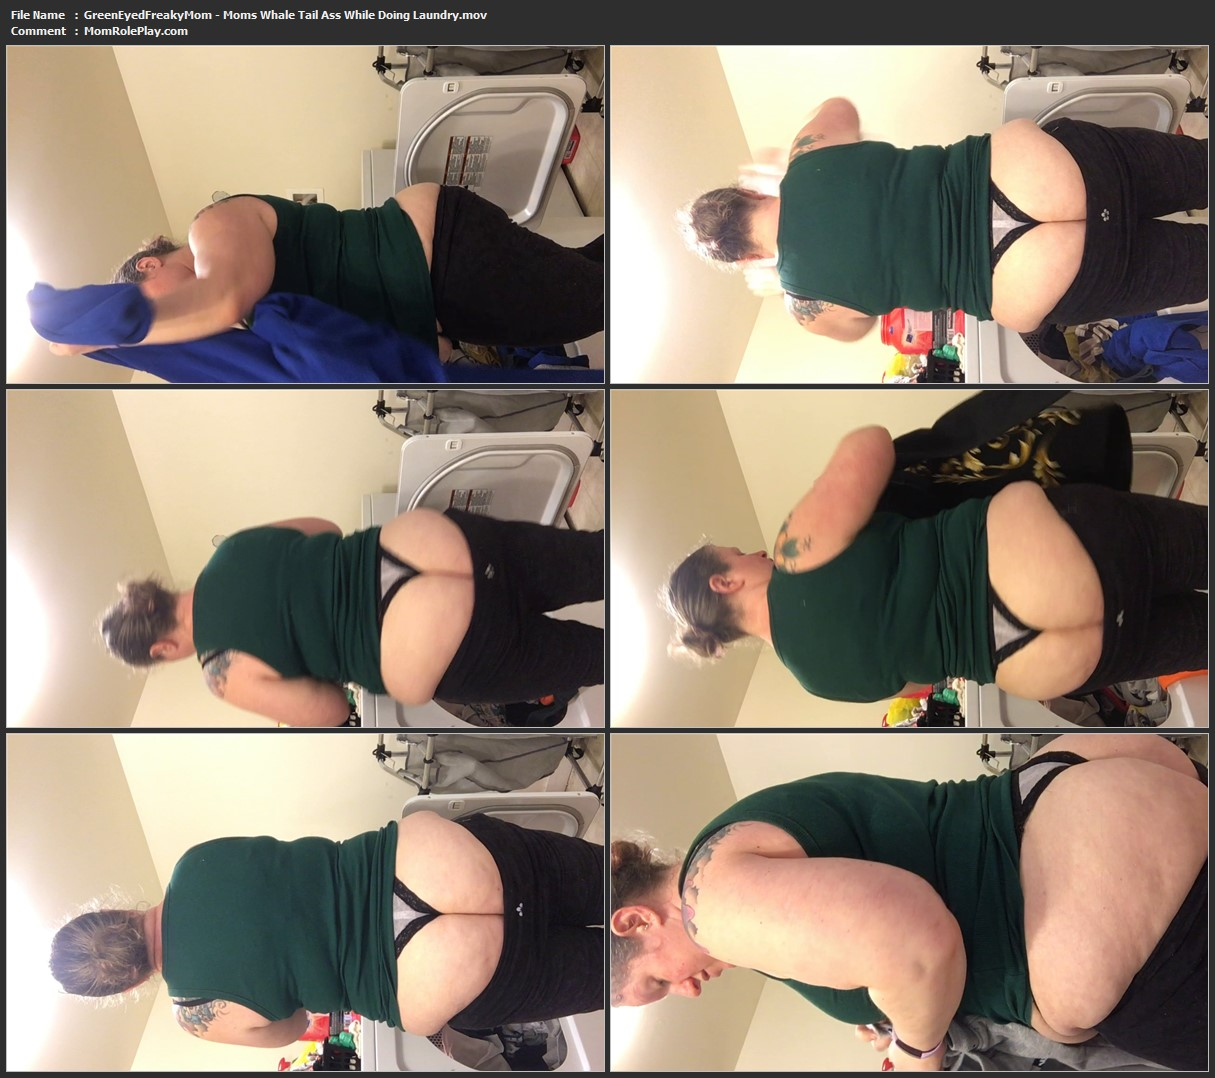 GreenEyedFreakyMom - Moms Whale Tail Ass While Doing Laundry